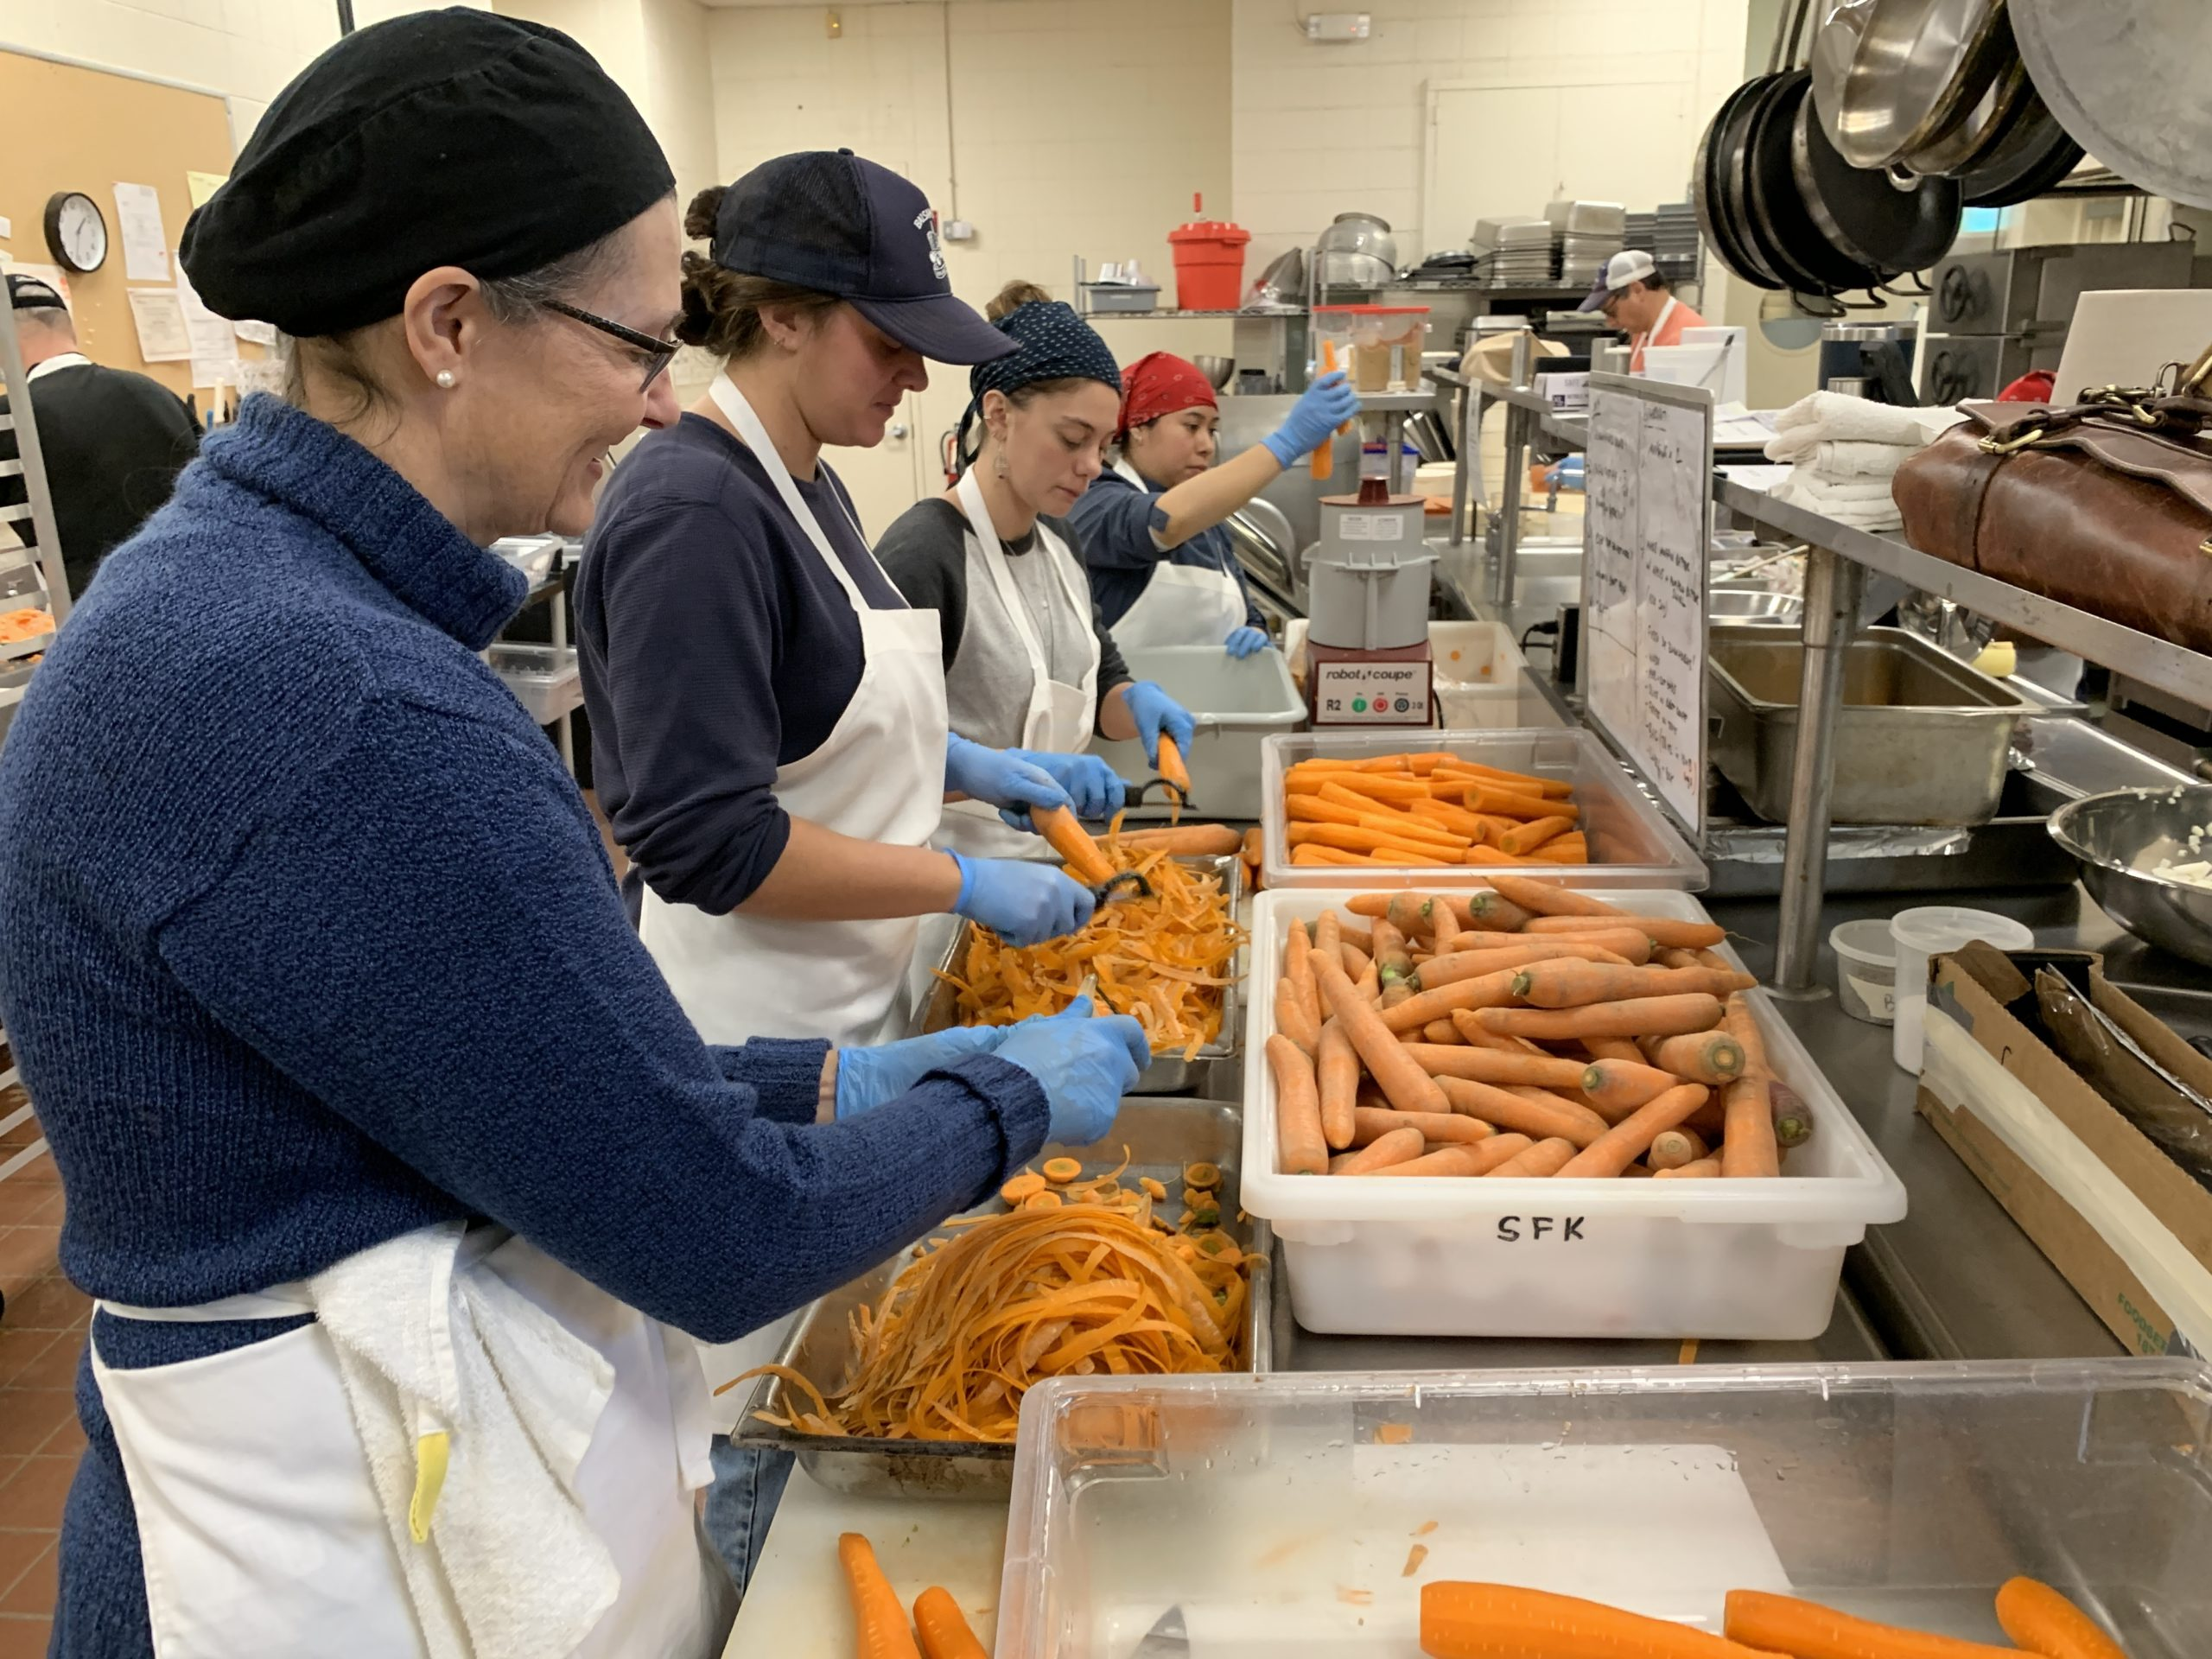 Volunteers helped wash, peel, chop and freeze 1,600 pounds of carrots to be sent to a food bank. KIM COVELL